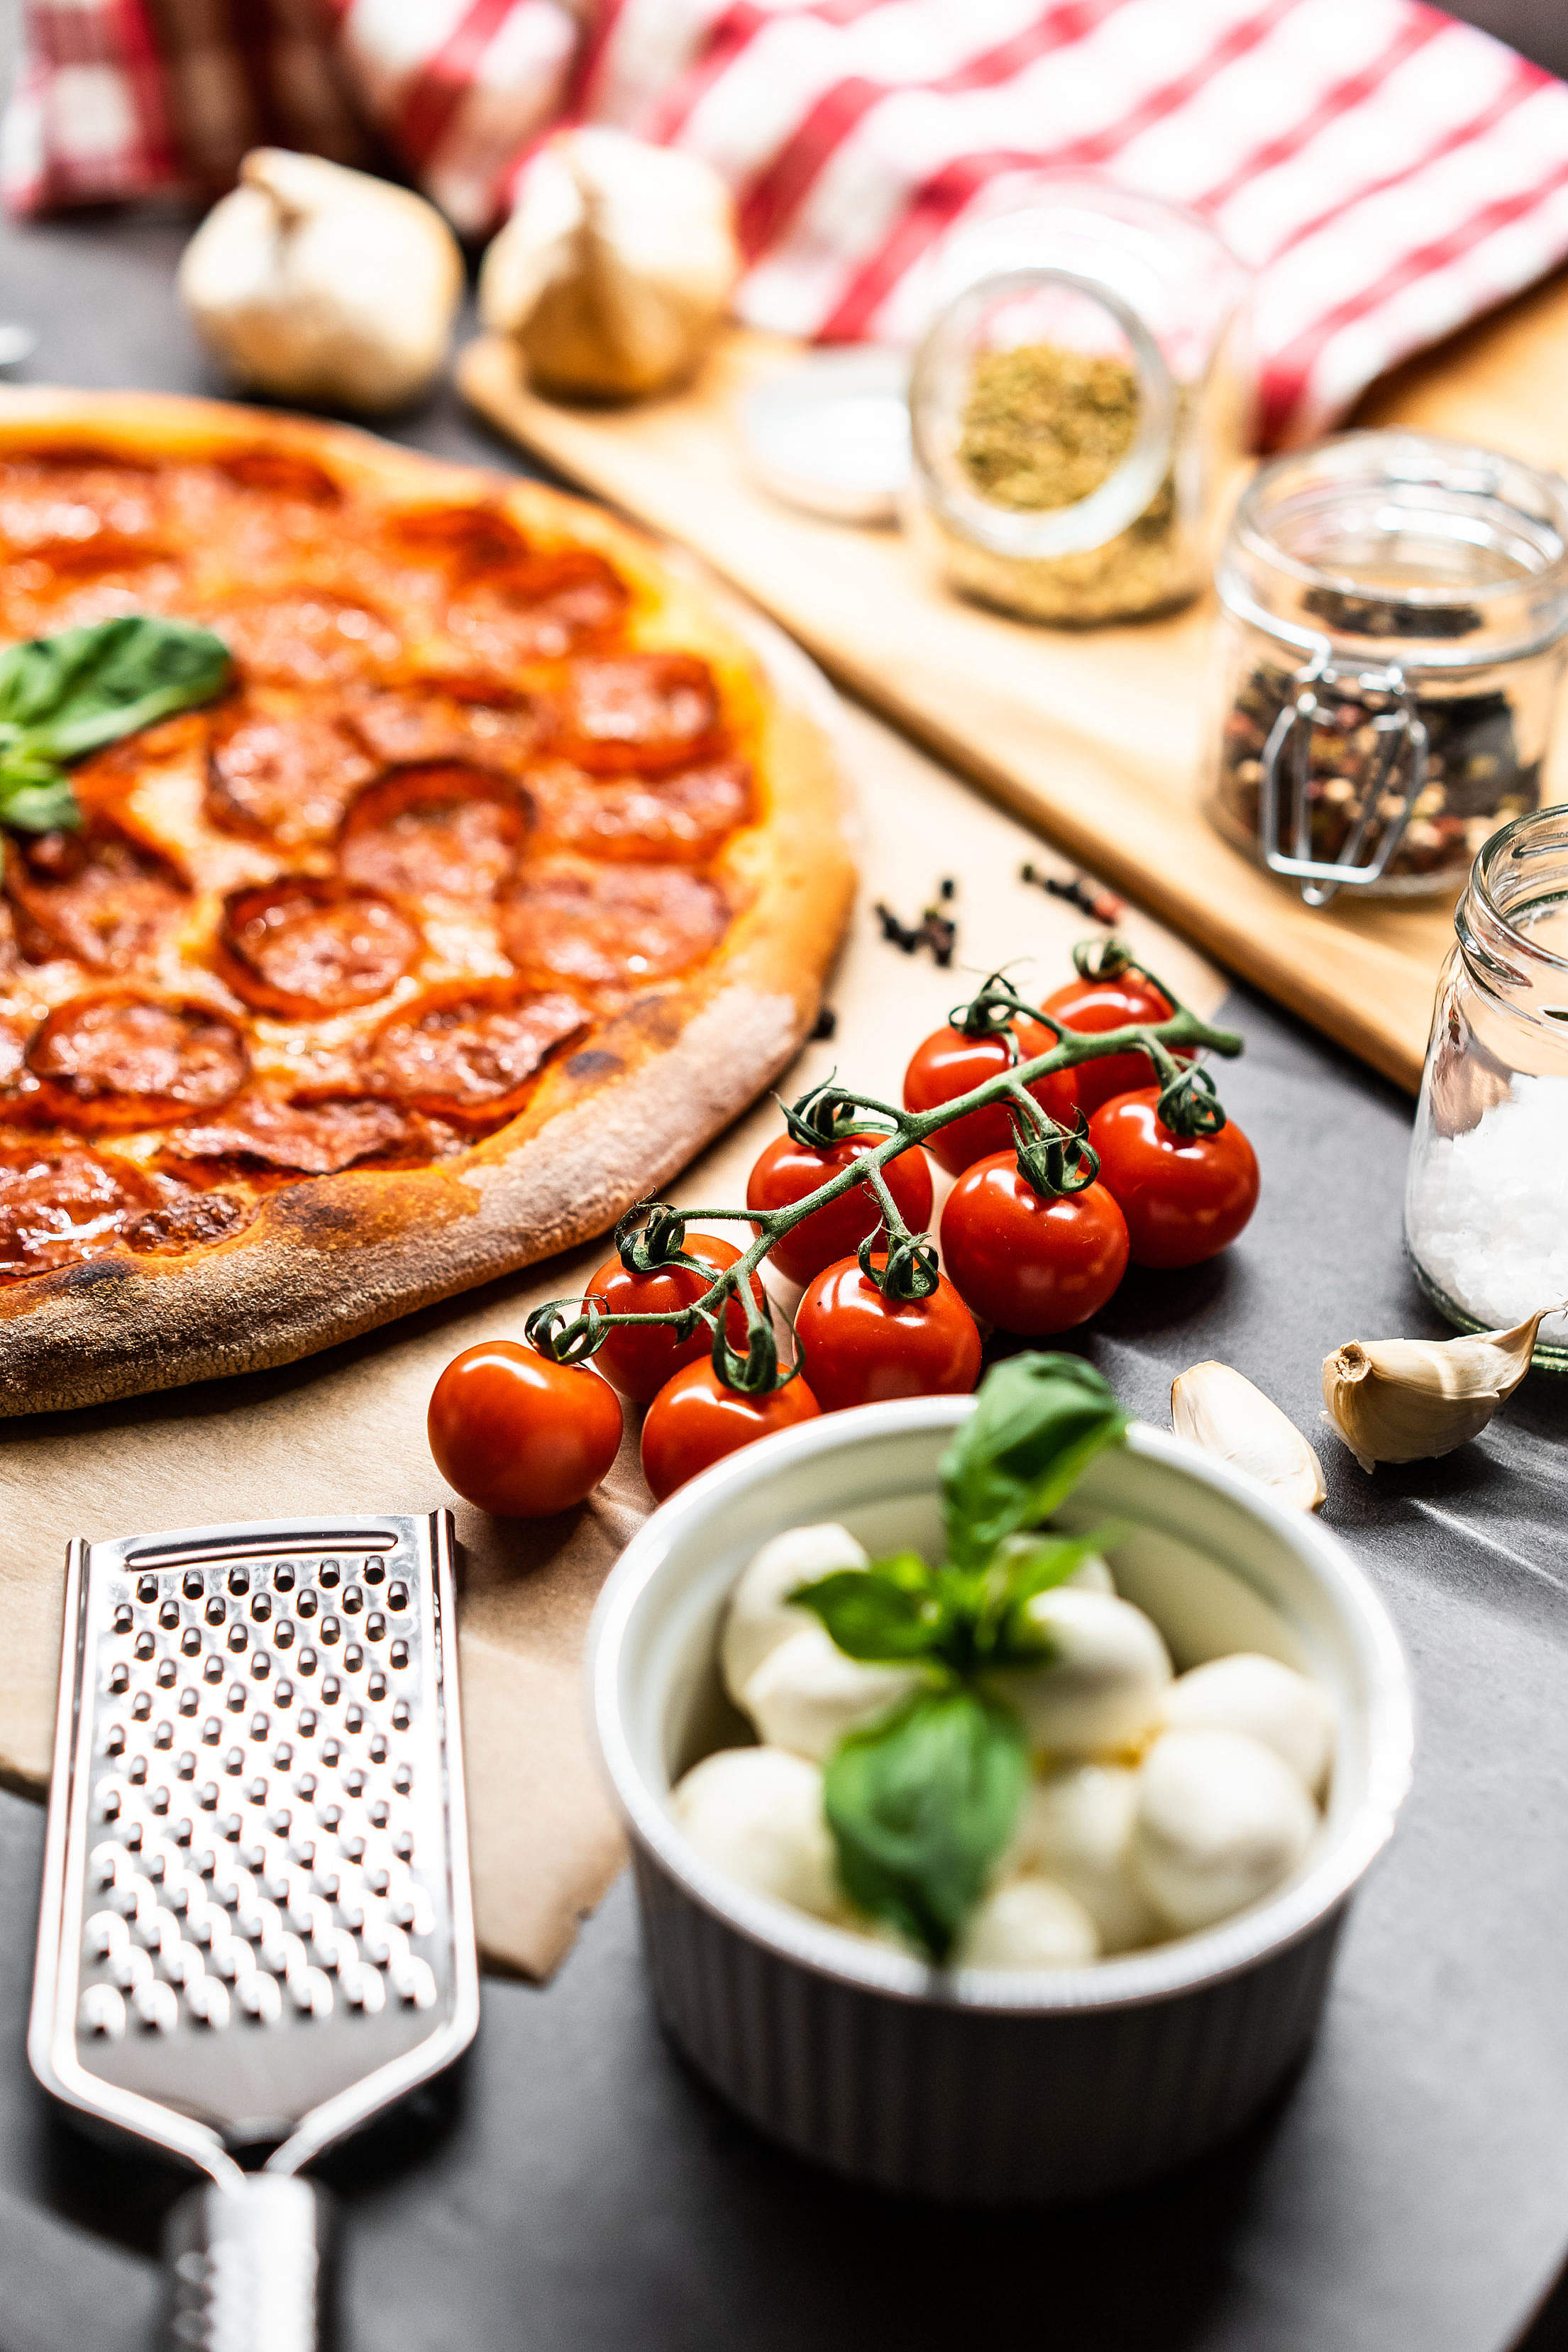 Cherry Tomatoes and Pizza Salami Free Stock Photo